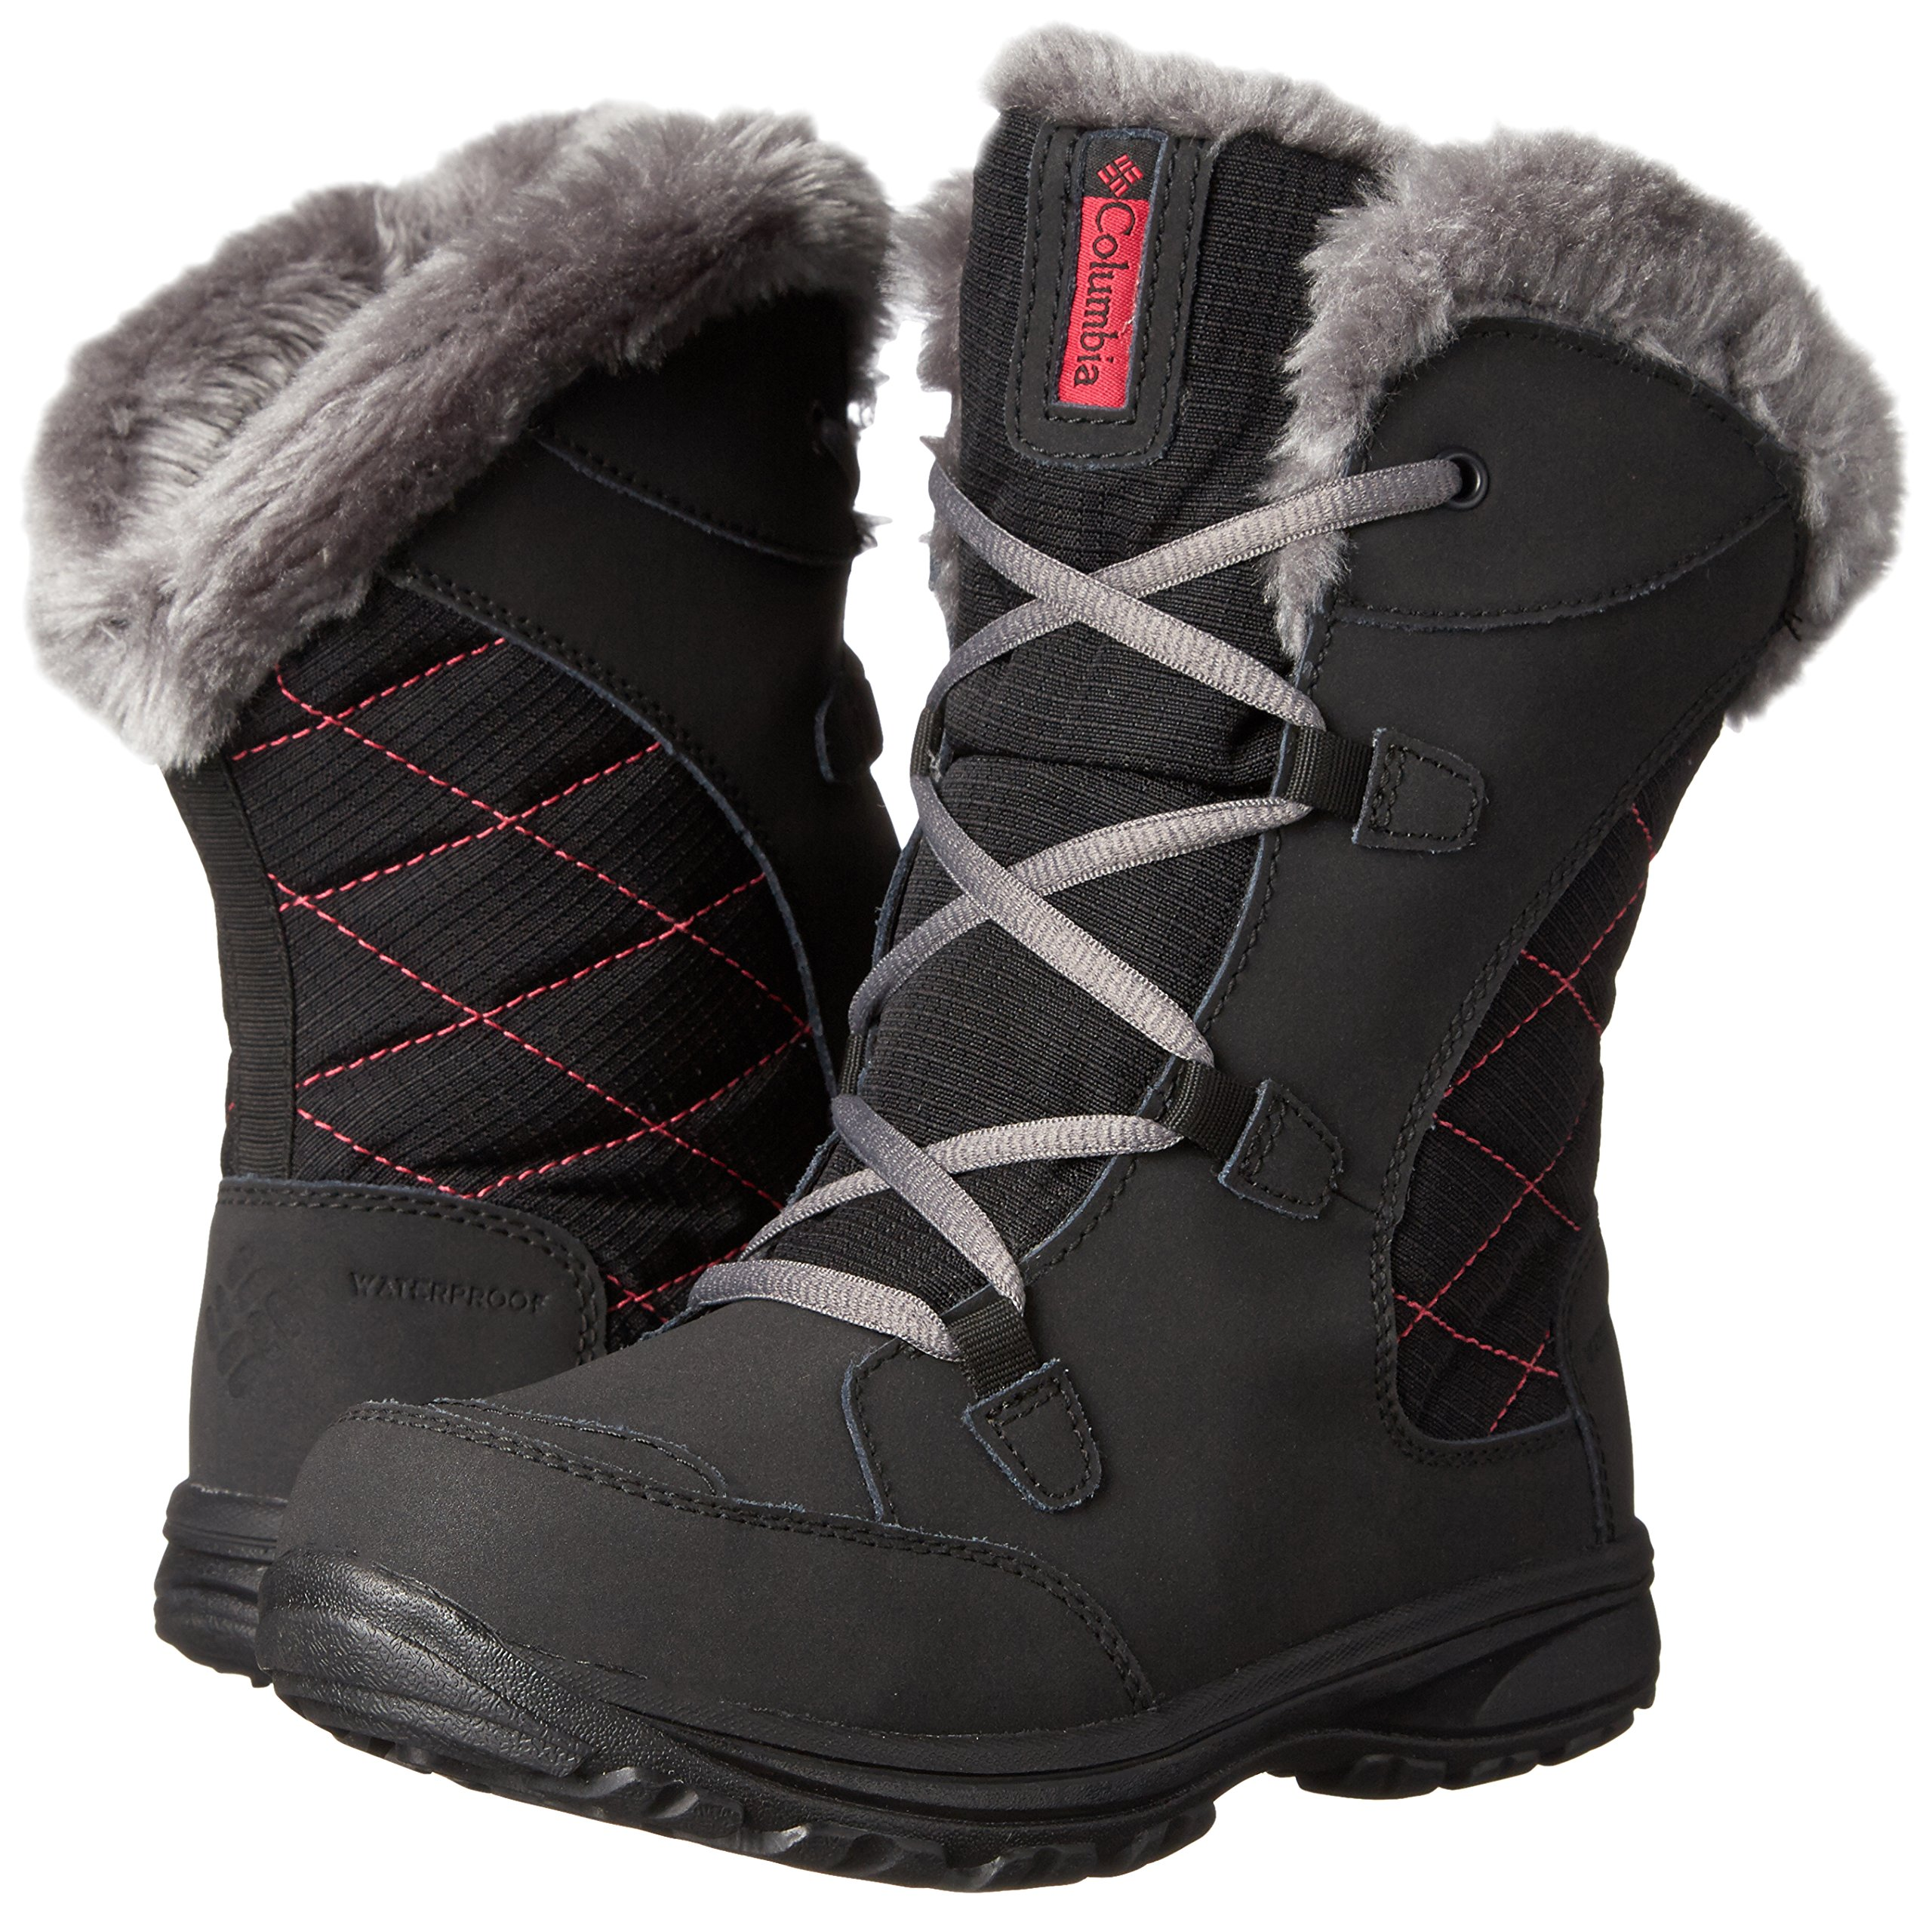 Columbia Youth Ice Maiden Lace Winter Boot (Little Kid/Big Kid), Black, 1 M US Little Kid by Columbia (Image #6)